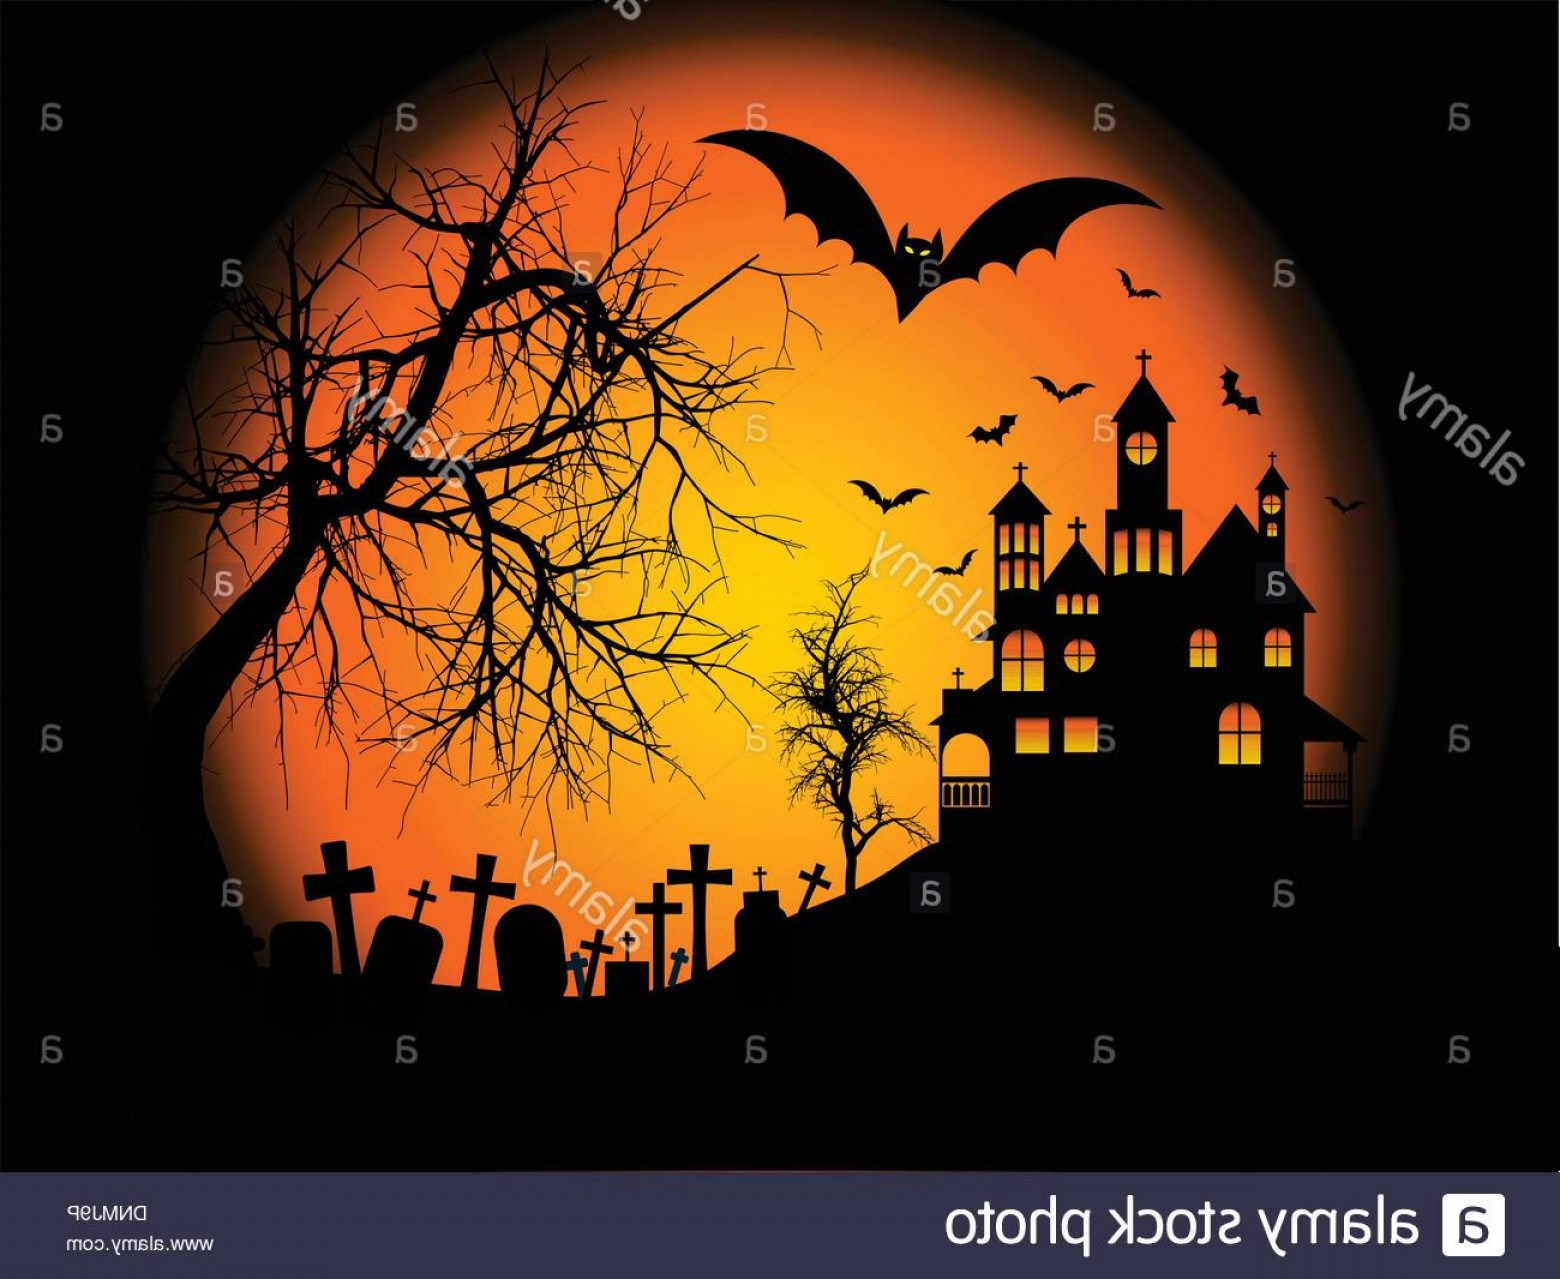 Spooky Halloween Background With Haunted House On A Hill Image 1560x1279